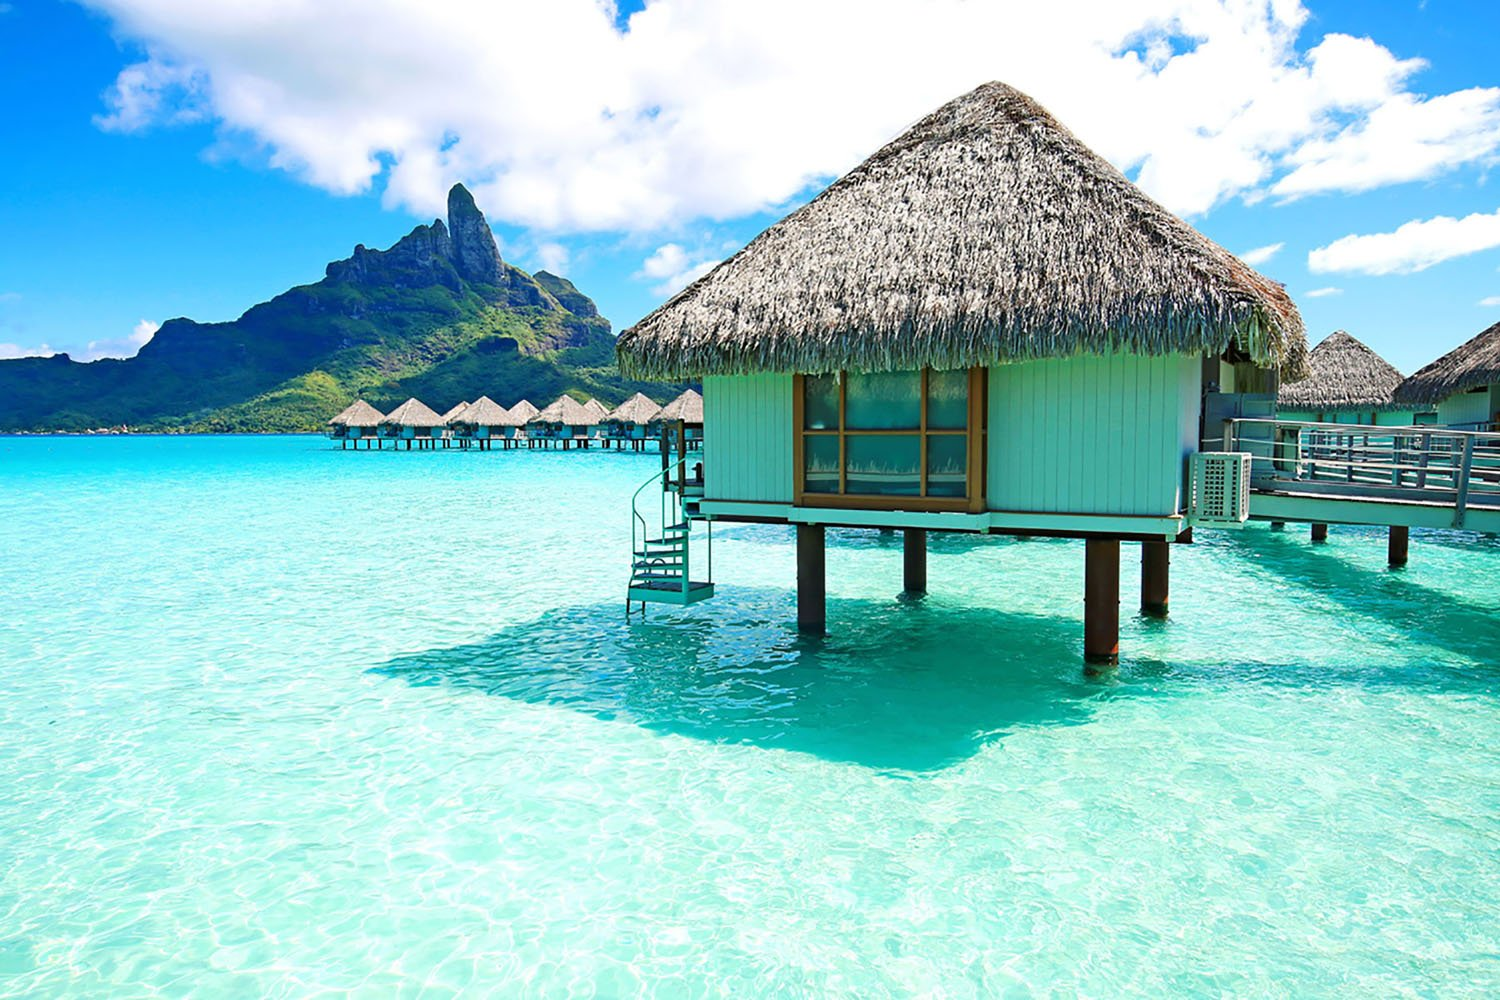 Grass-roofed huts on the beach in Bora Bora, French Polynesia.